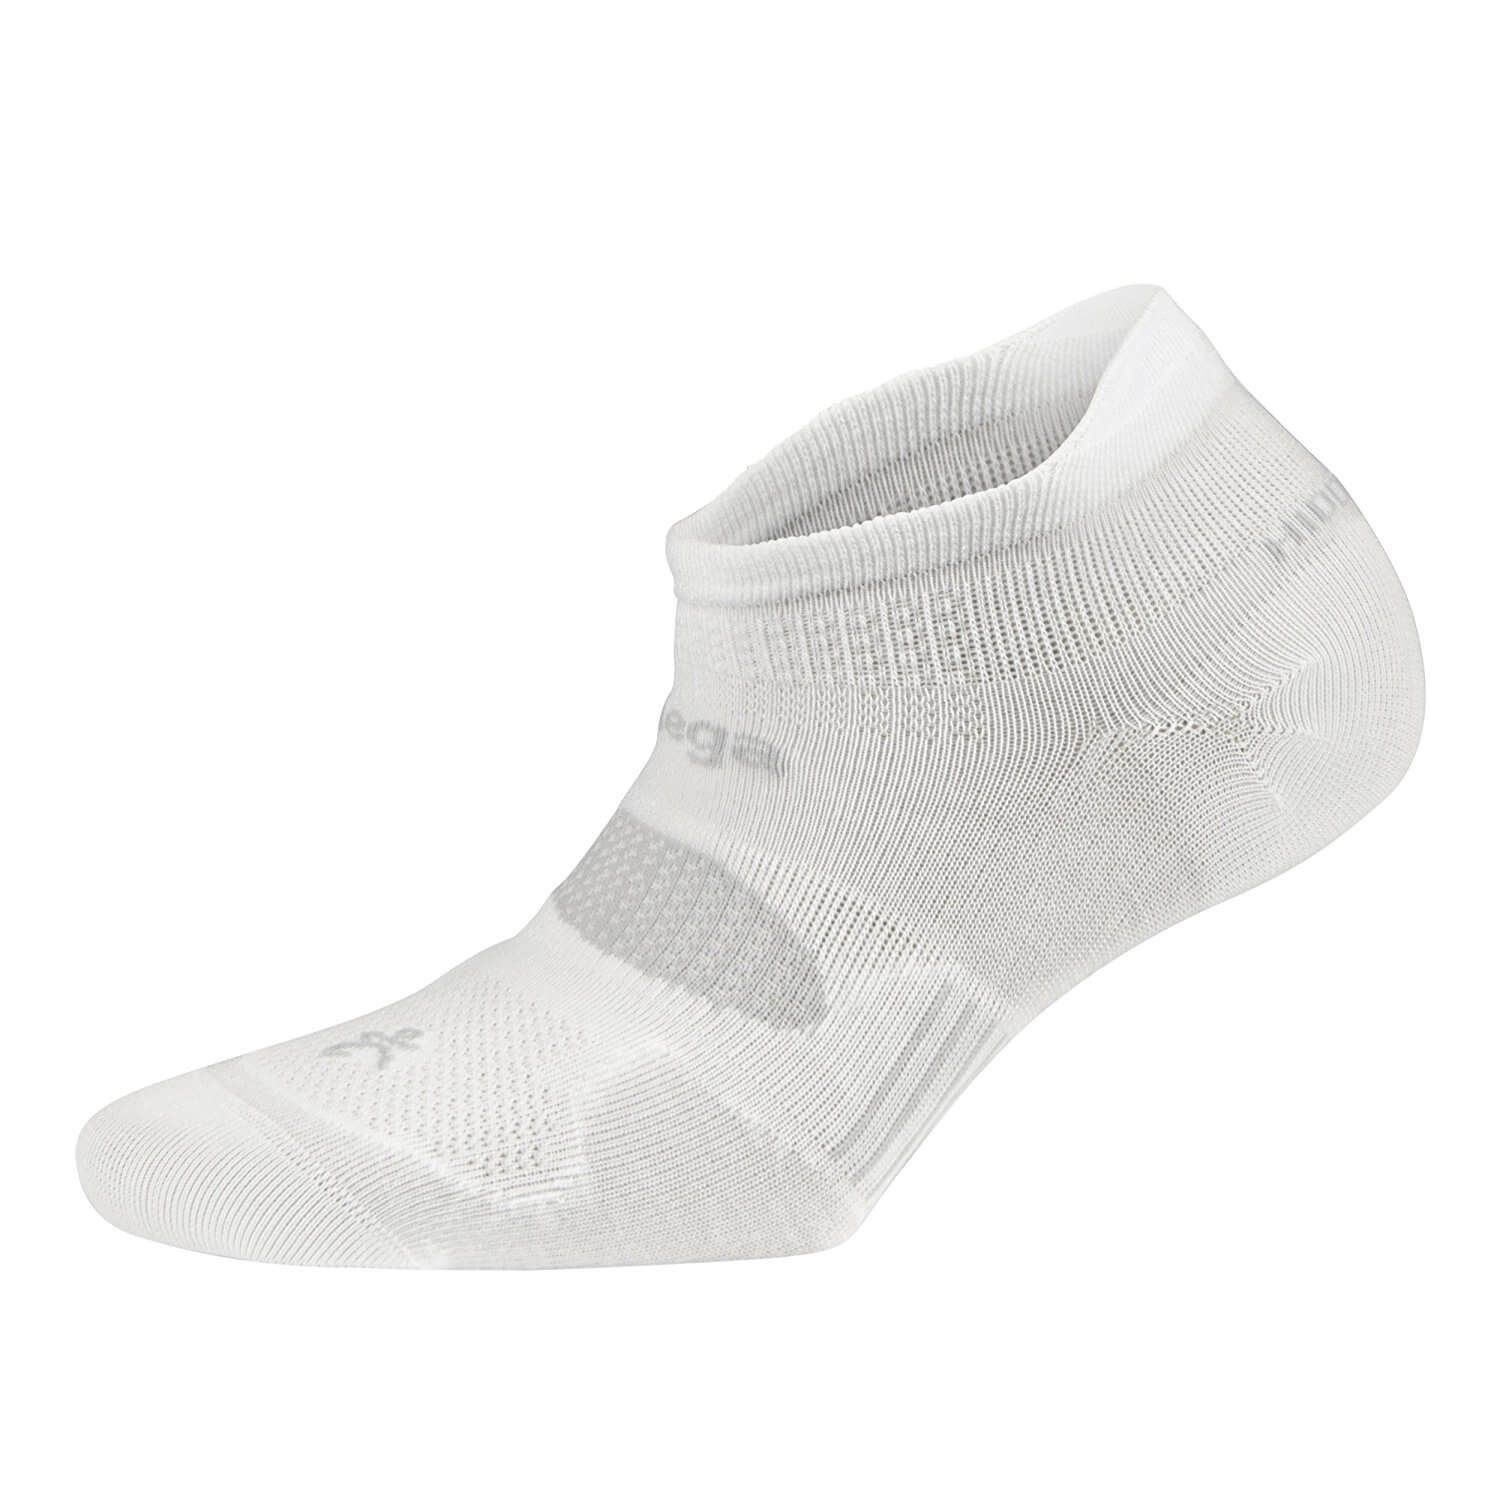 1 Pair Balega Hidden Dry Moisture-Wicking Socks For Men and Women